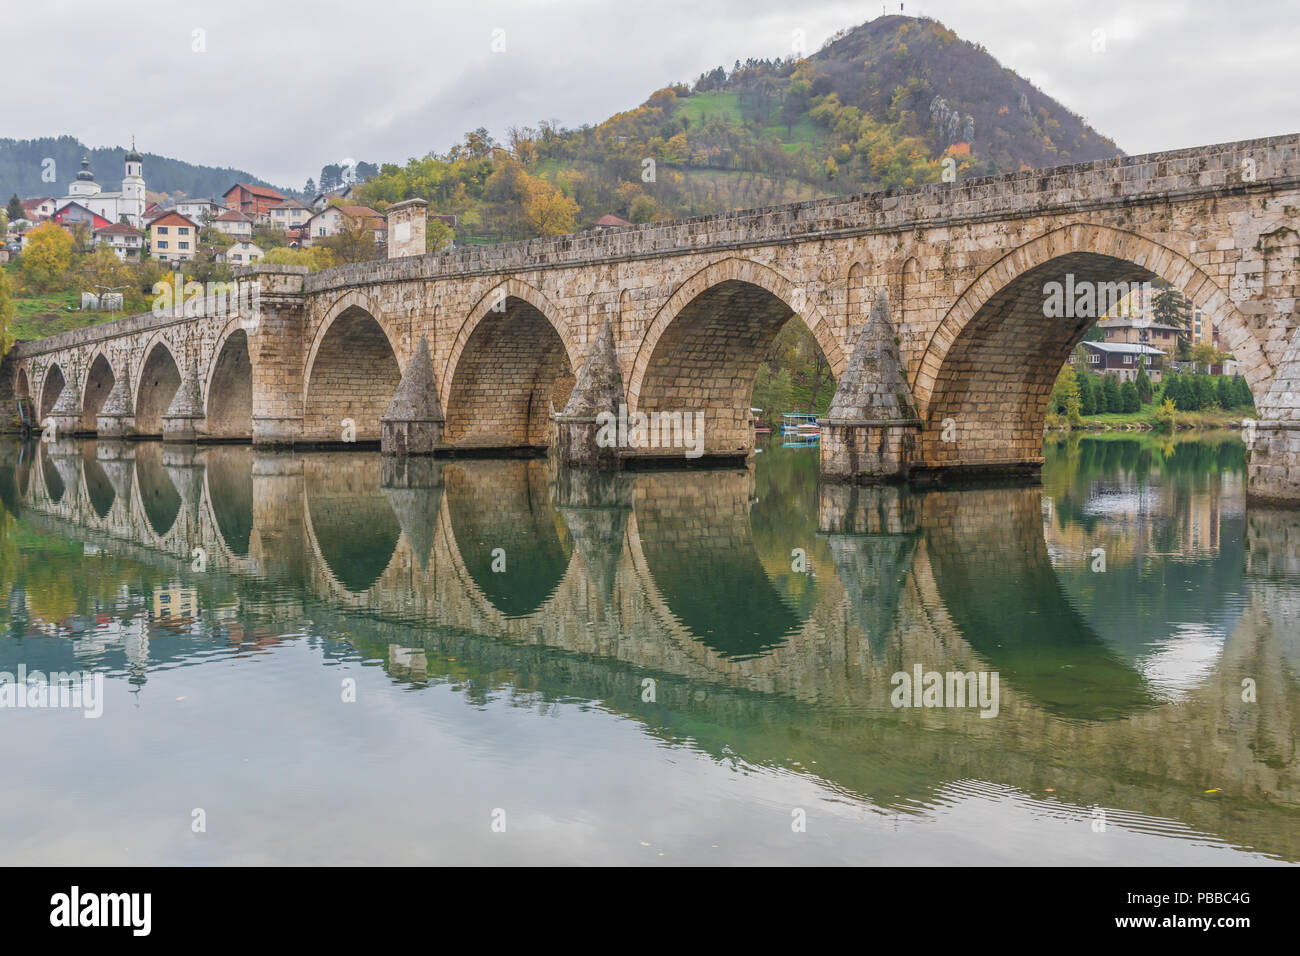 Visegrad, Bosnia & Herzegovina - the Mehmed Paša Bridge is one of the main landmarks in the country, and Visegrad one of the pearls of the Balkans - Stock Image